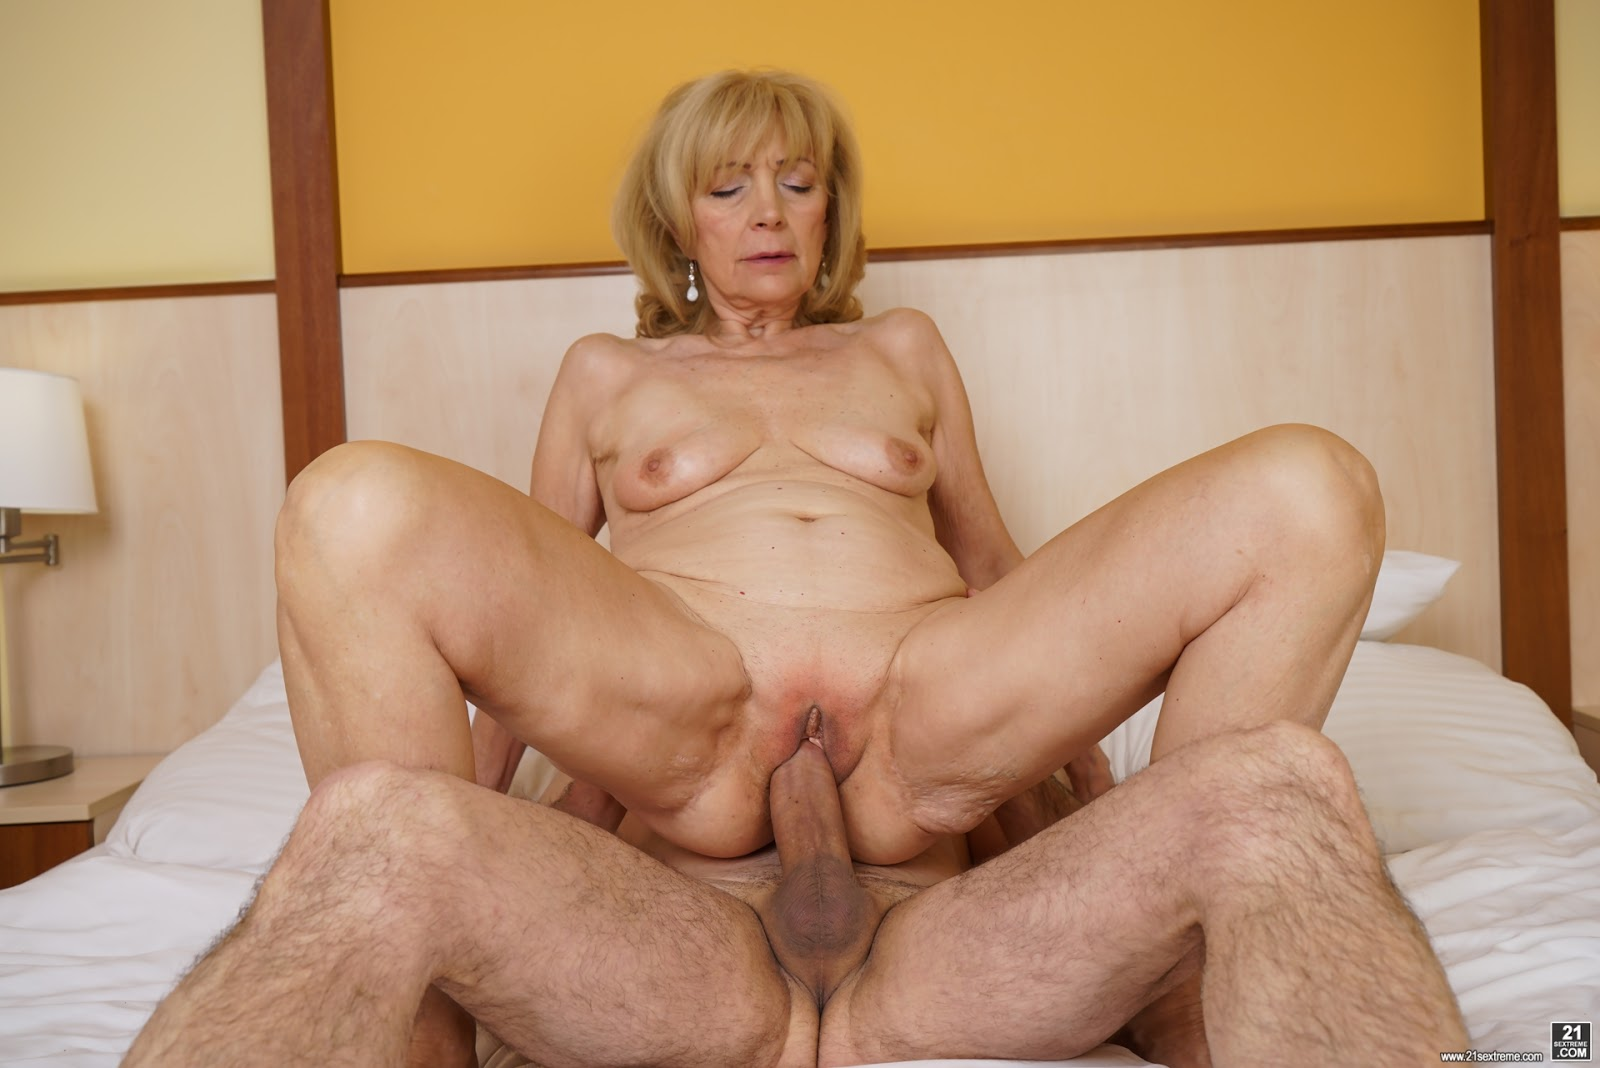 Older Women Being Sexy